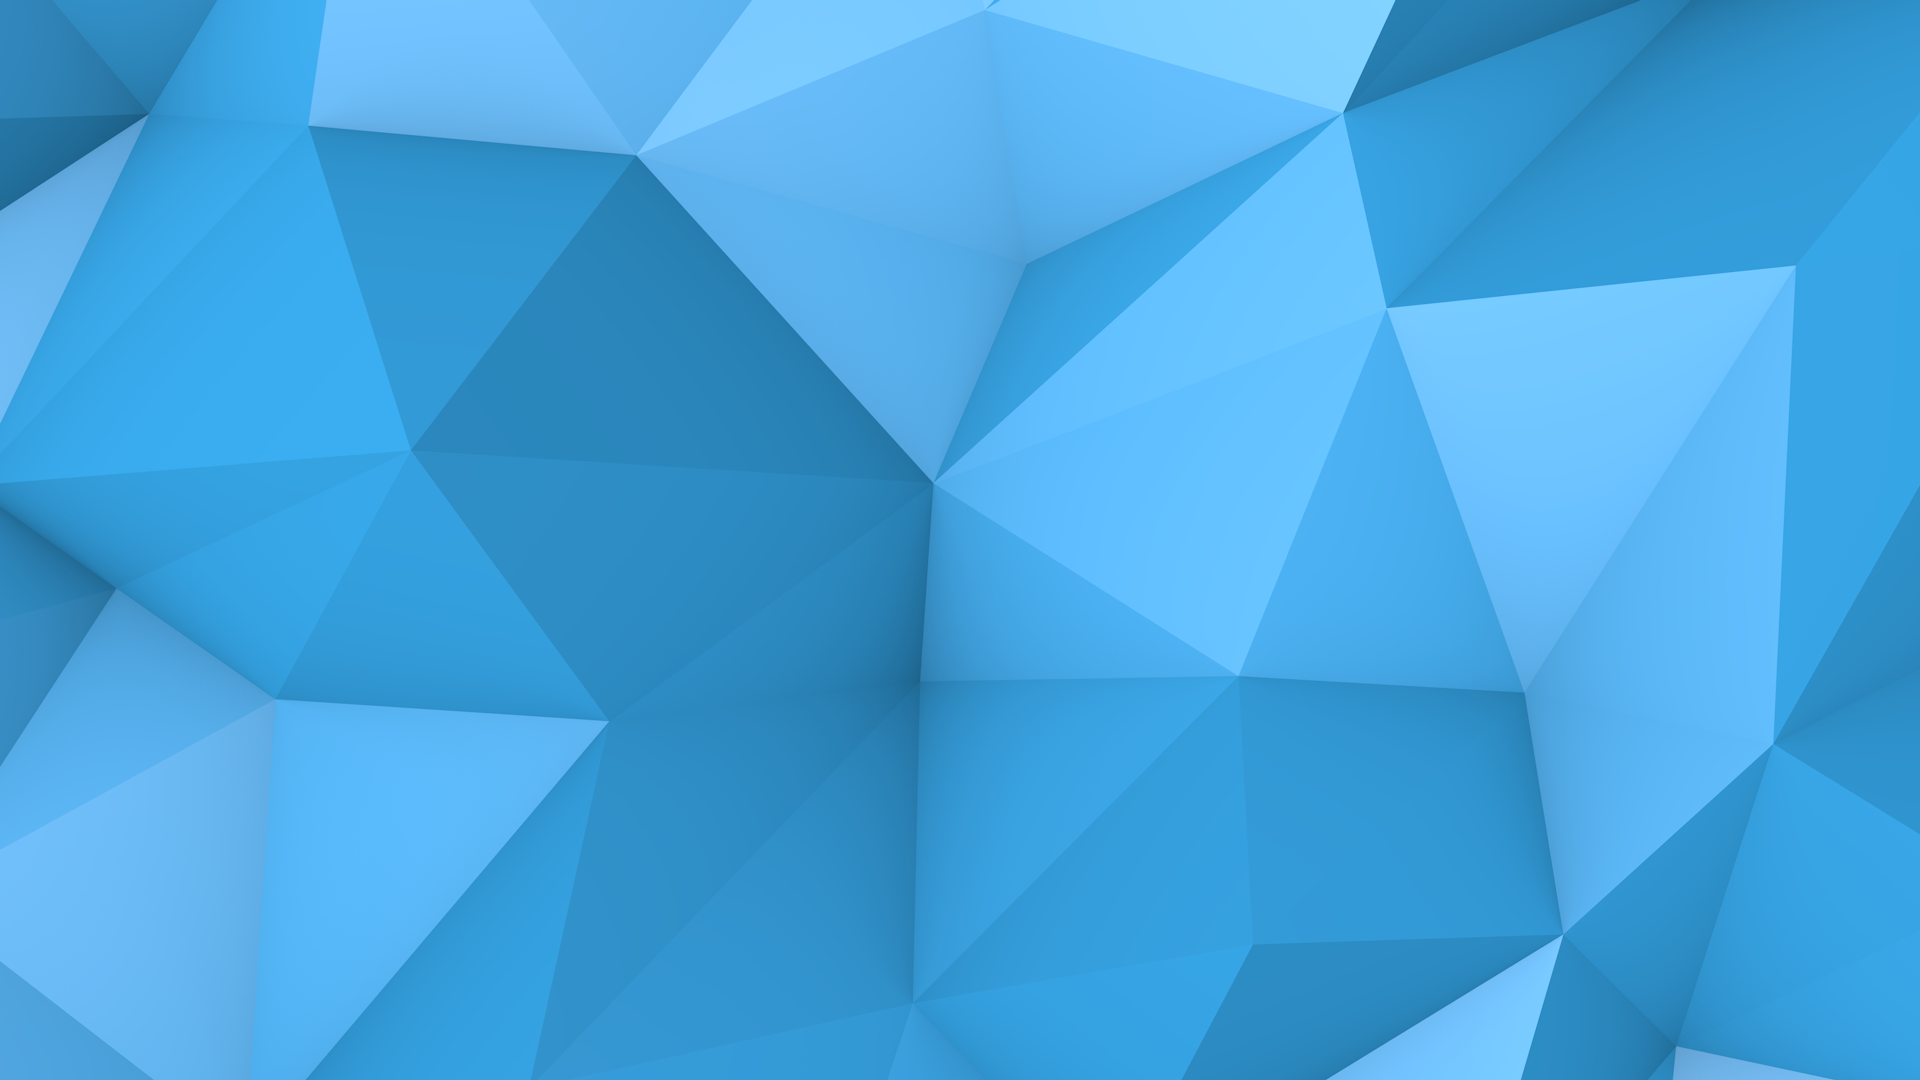 Digital_Artwork_Polygon_Art_Blue_78755